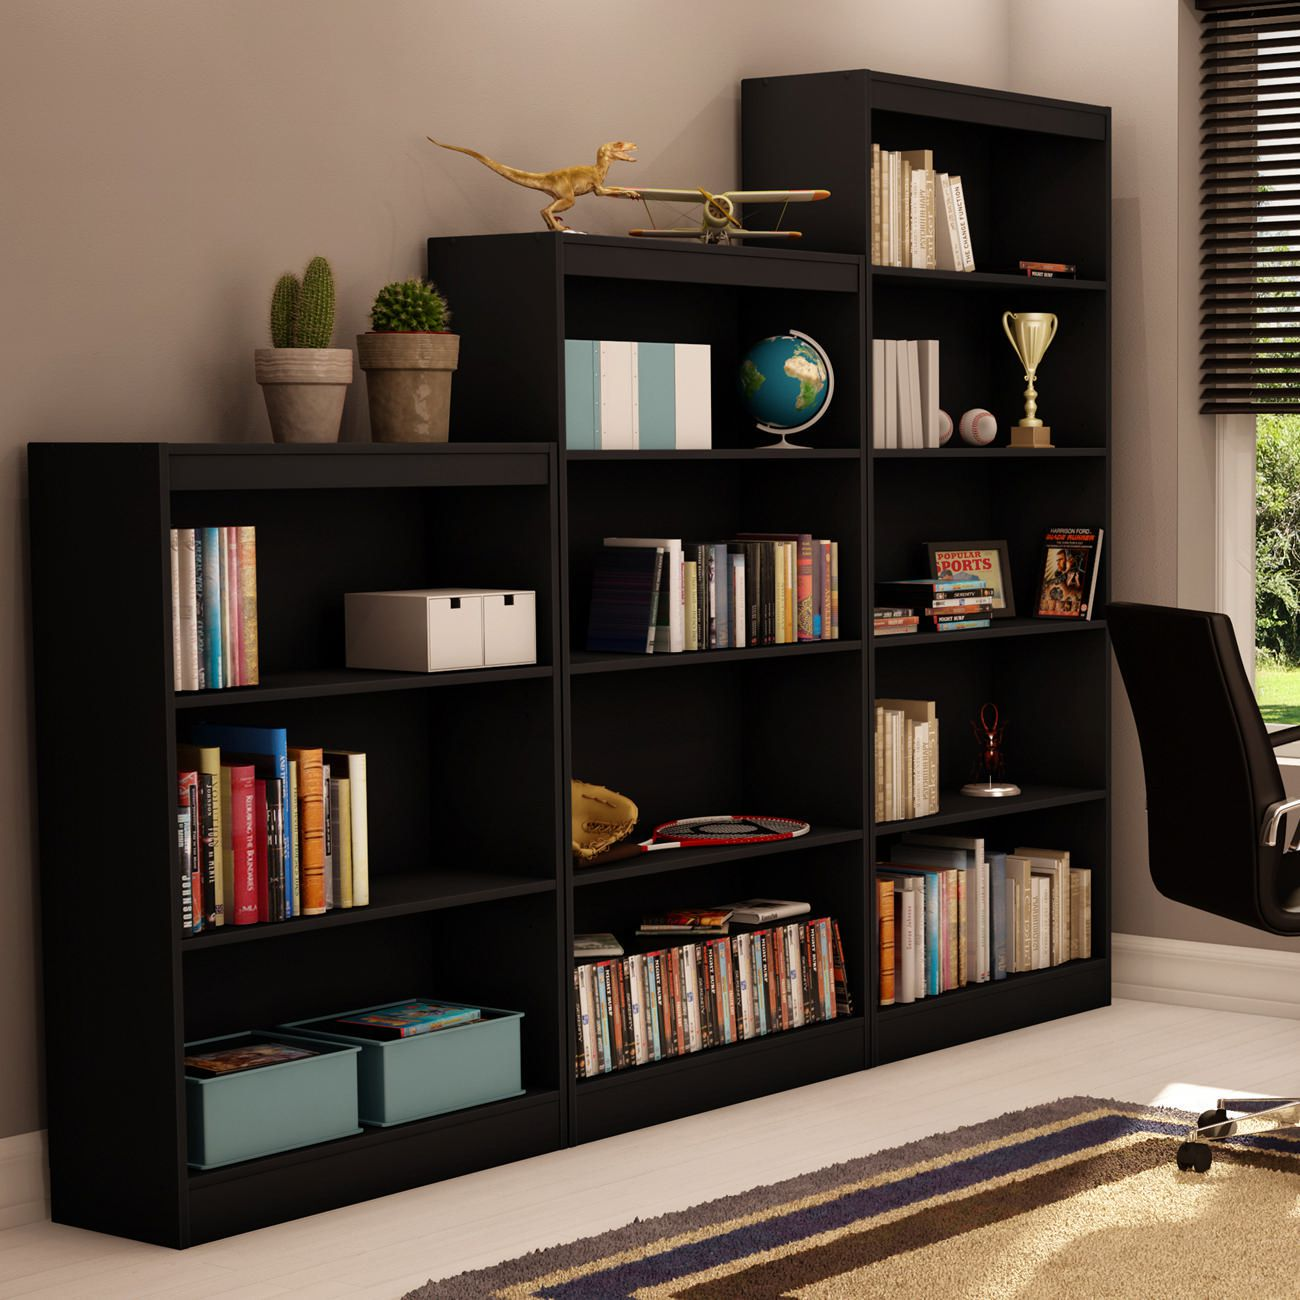 bookcase pure white south shore shop shelf furniture axess at pd